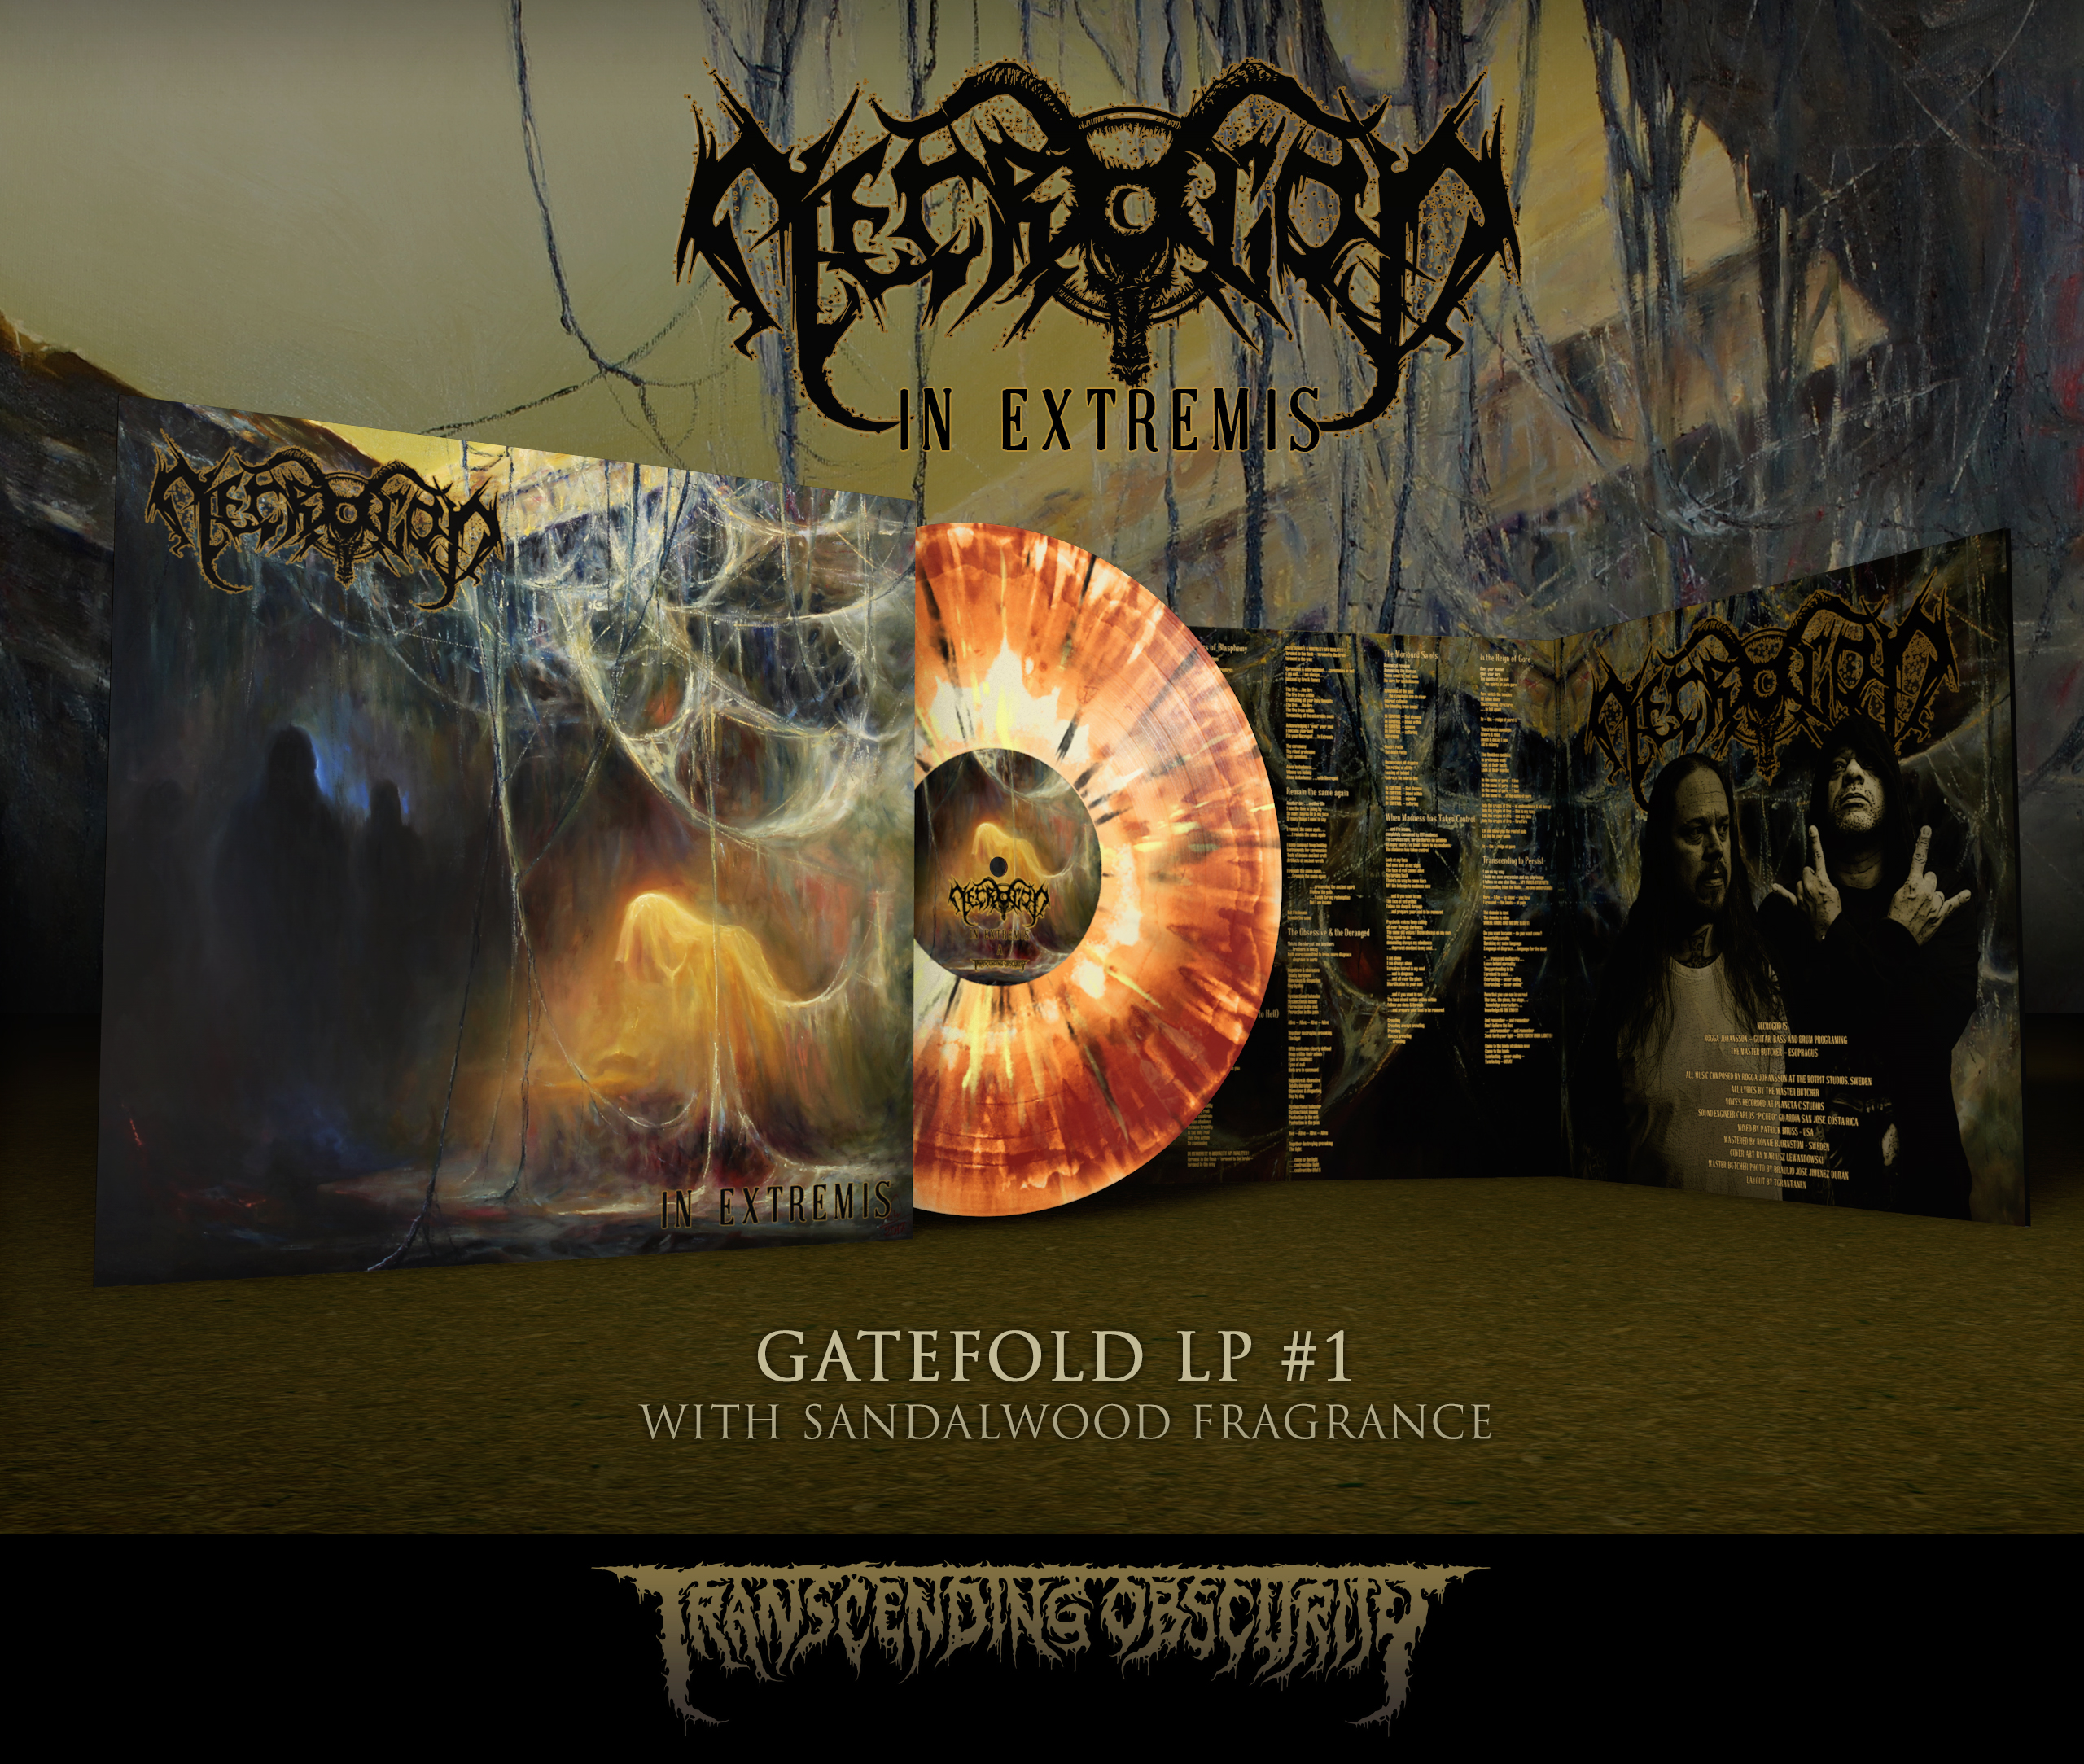 NECROGOD - In Extremis Gatefold LP with Sandalwood Fragrance (Limited to 85 per variant)